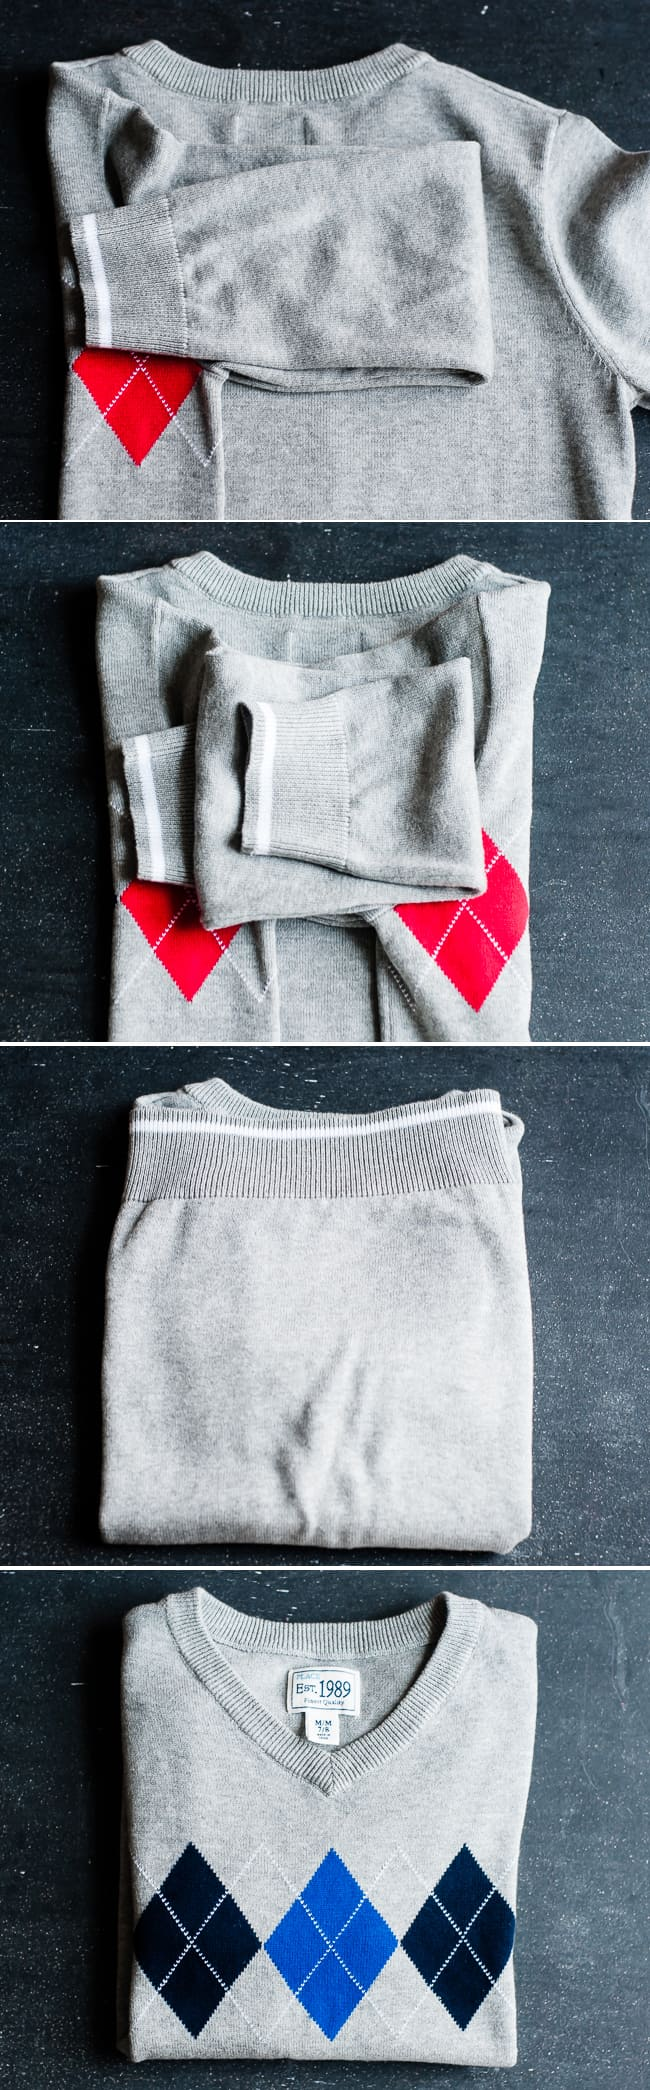 How to fold a sweater | Hello Glow